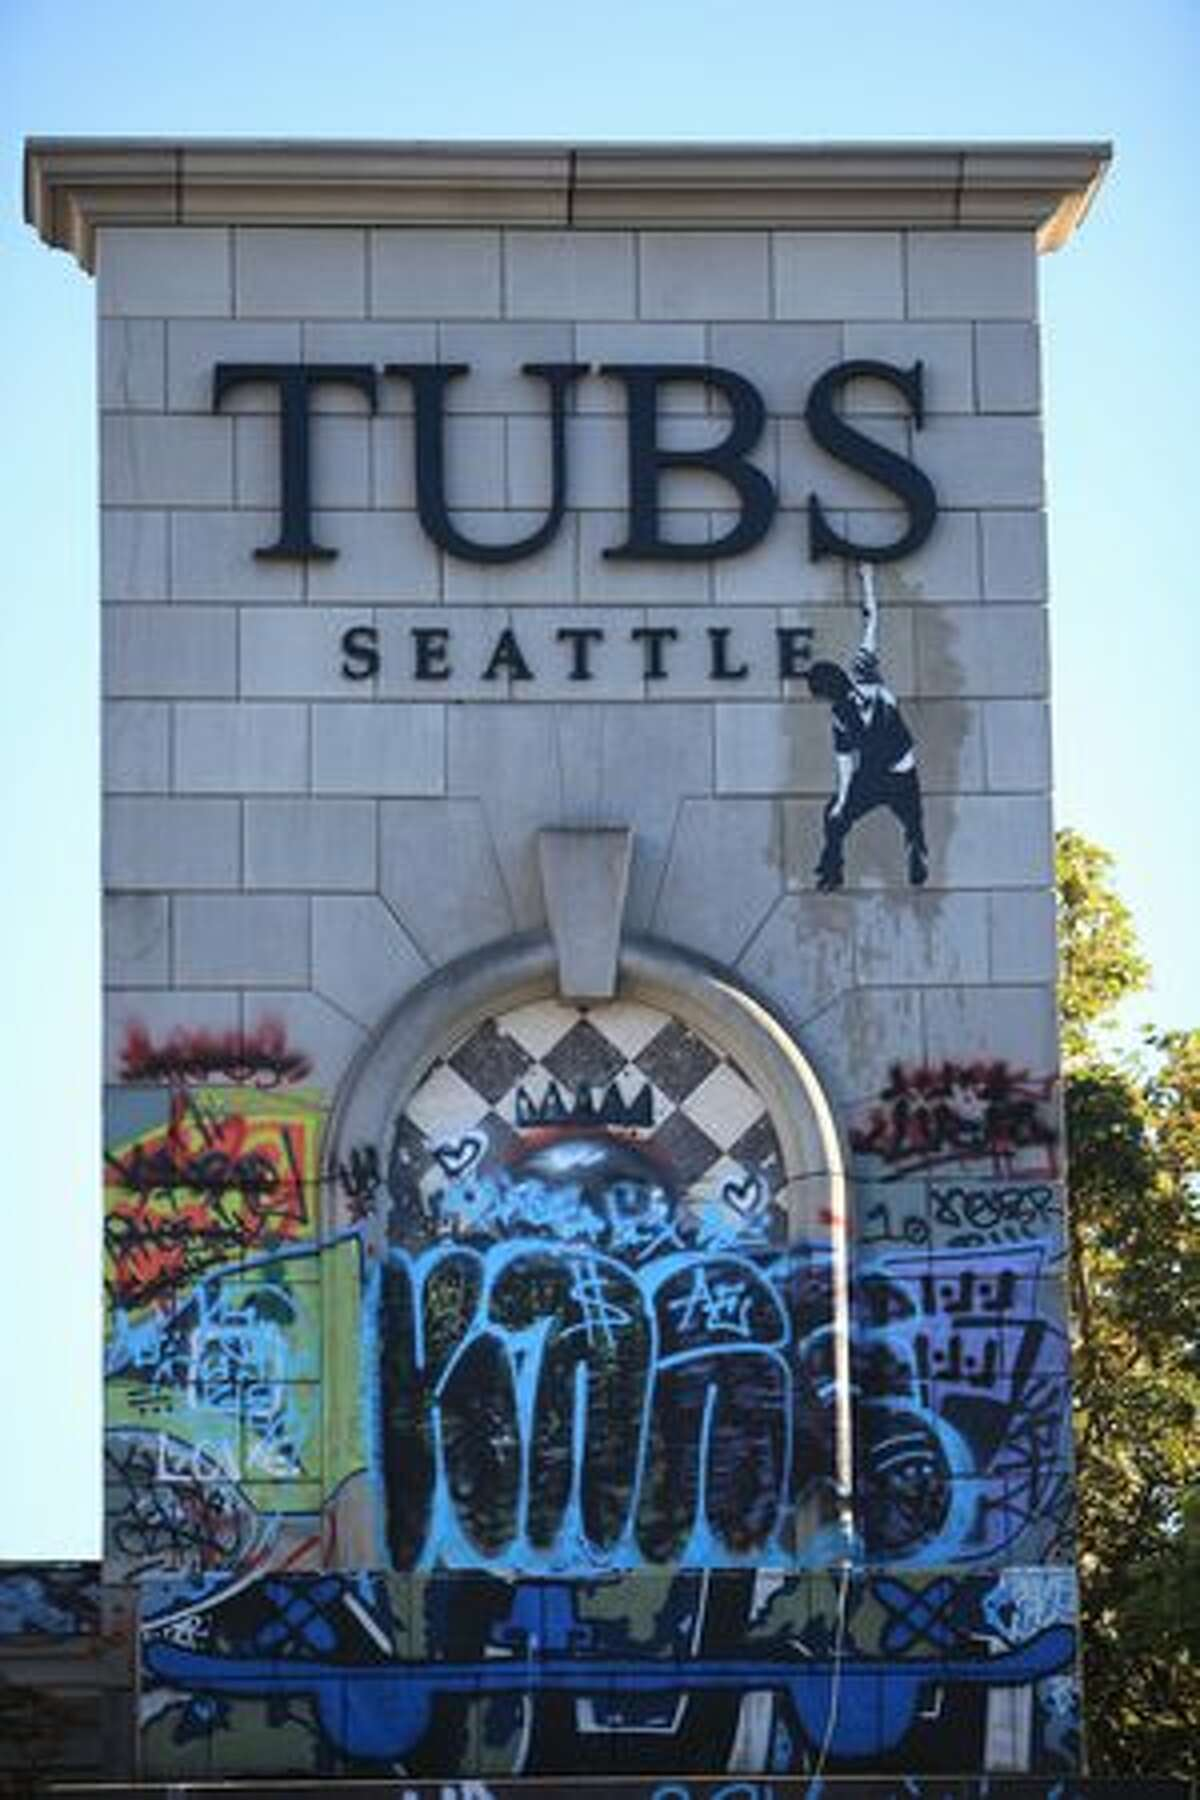 The former Tubs building at the corner of 50th and Roosevelt in the University District.